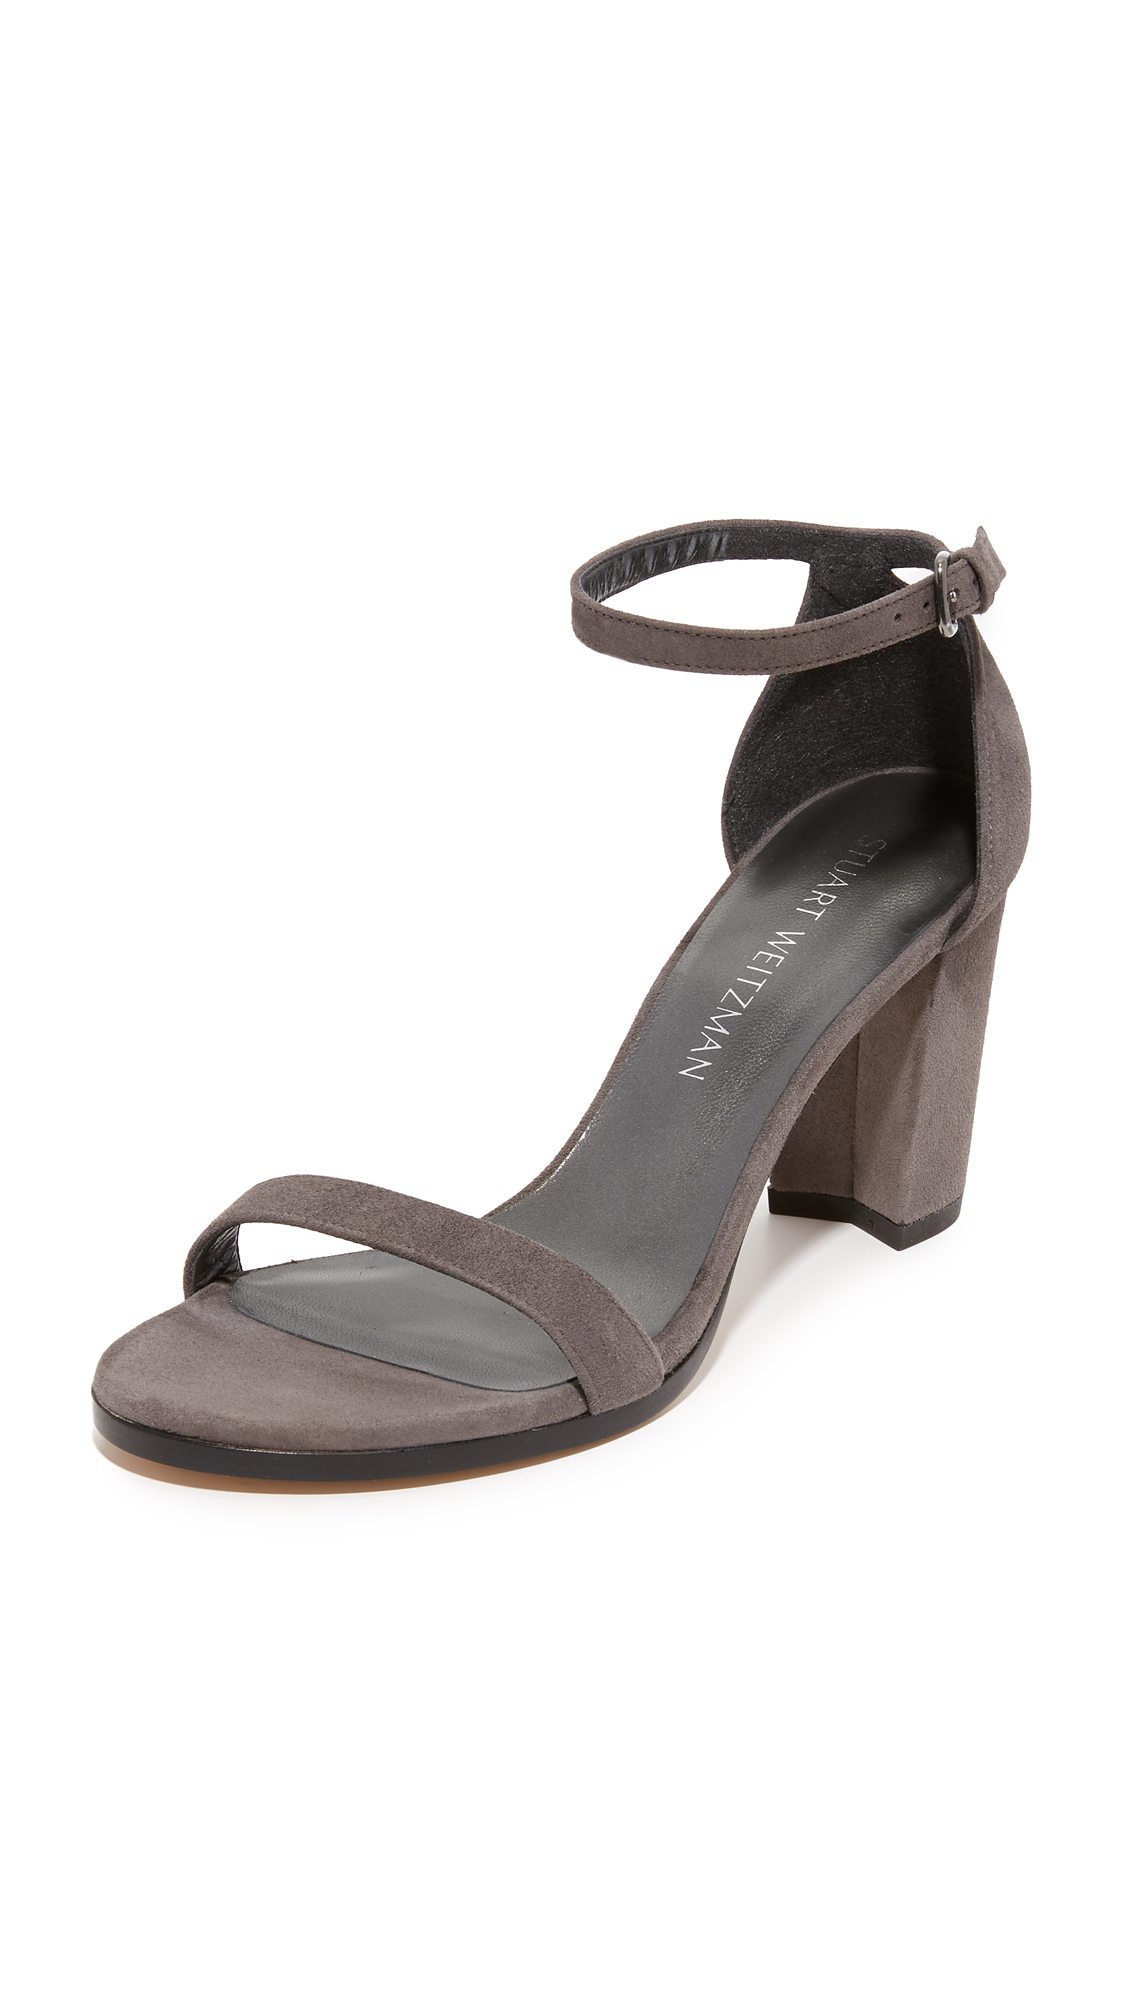 Stuart weitzman Nearlynude Sandals in Gray